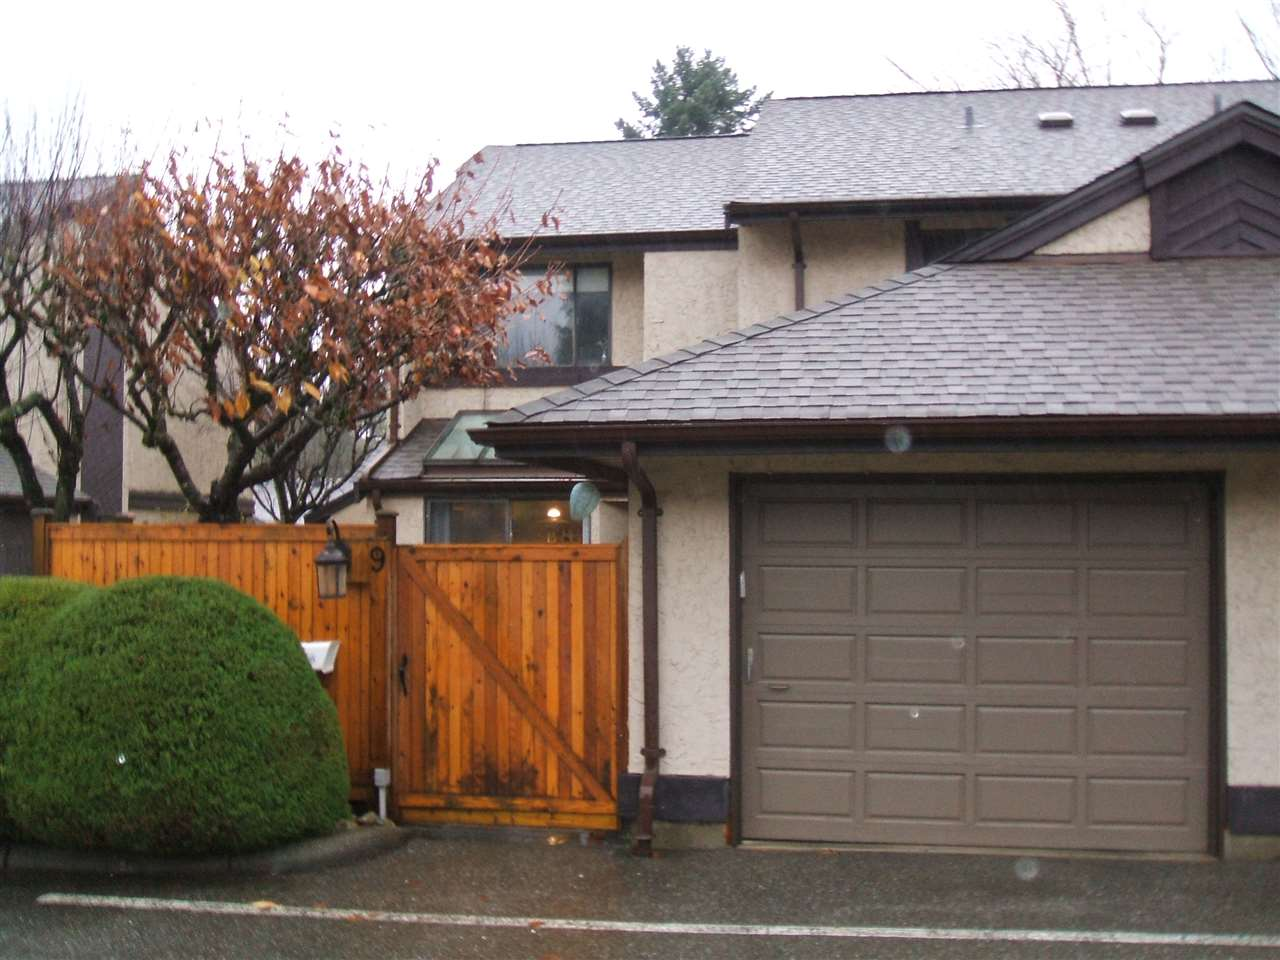 Here's a great buy! Nice end unit townhouse in a very desirable Family complex. Stylish, well maintained 3 bedroom, 3 bathroom home located in East Abbotsford. Very close to all levels of good schools, shopping and Abbotsford Rec center. Single garage plus one outdoor parking stall. fenced courtyard. A great place to live. Ready to go! Sellers would prefer end of Feb dates but flexible. ACCEPTED OFFER UNTIL DEC 12/2017